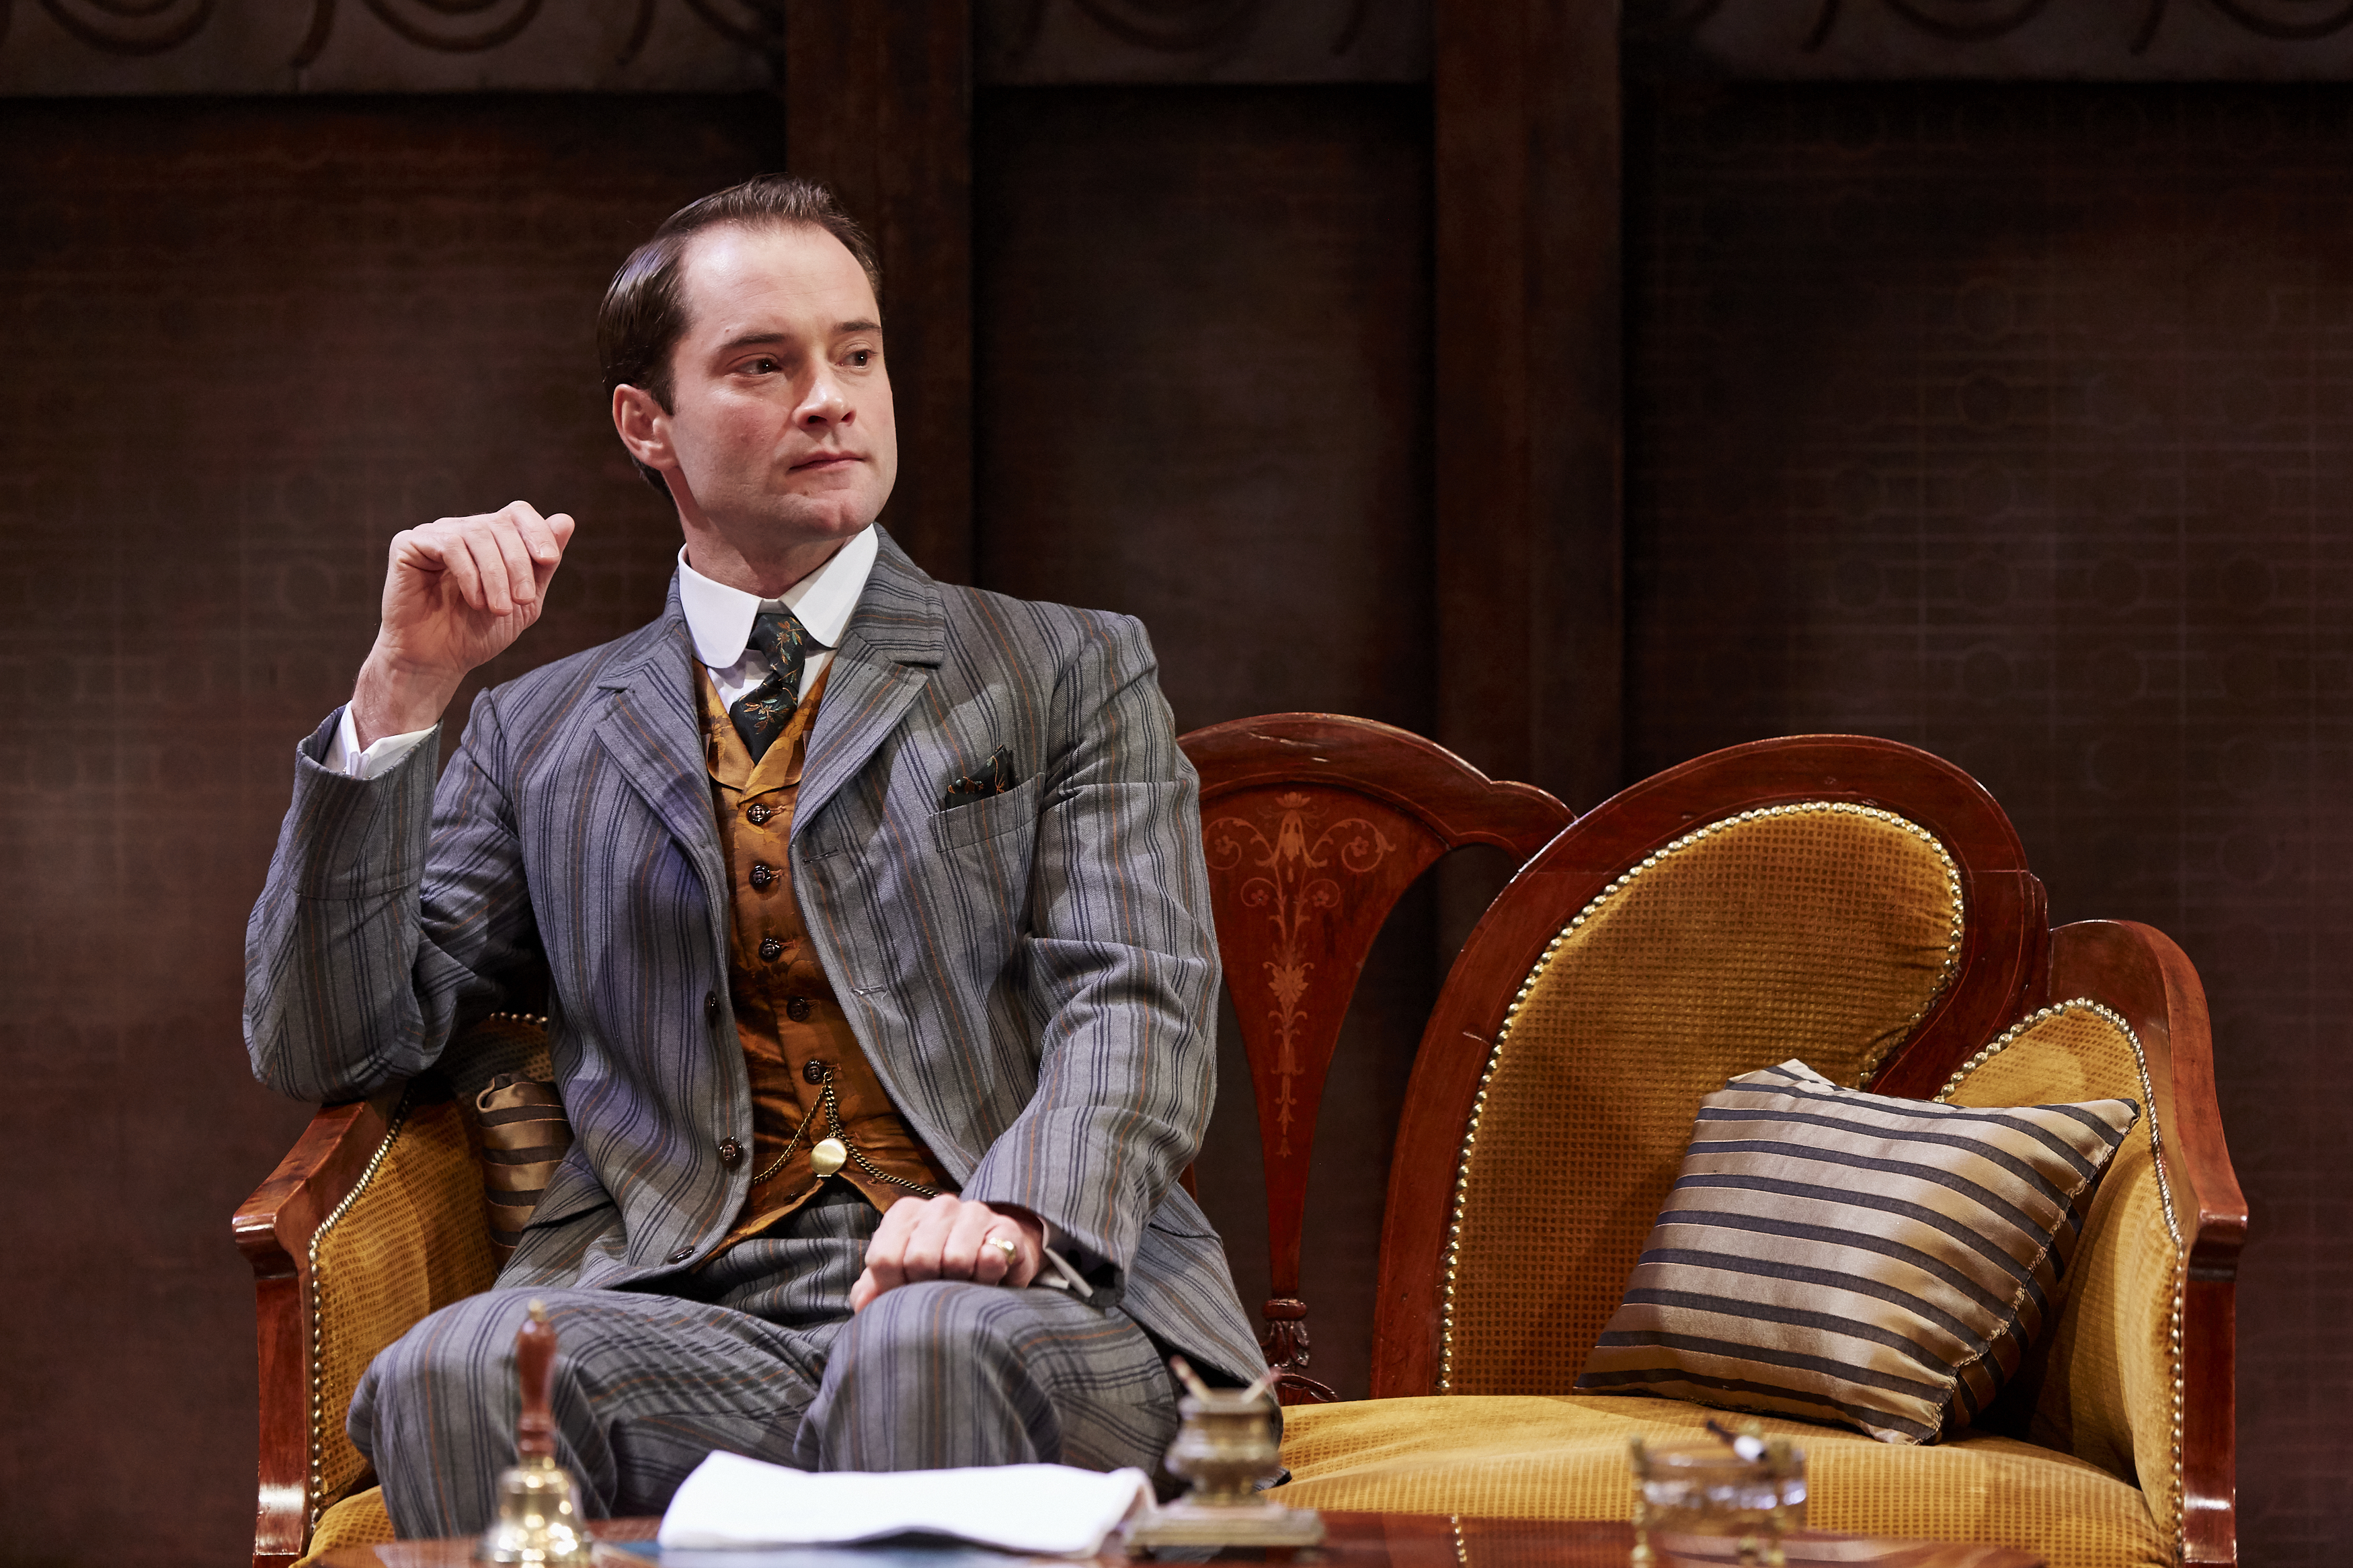 Peter Sandys-Clarke as Jack in THE IMPORTANCE OF BEING EARNEST, credit The Other Richard